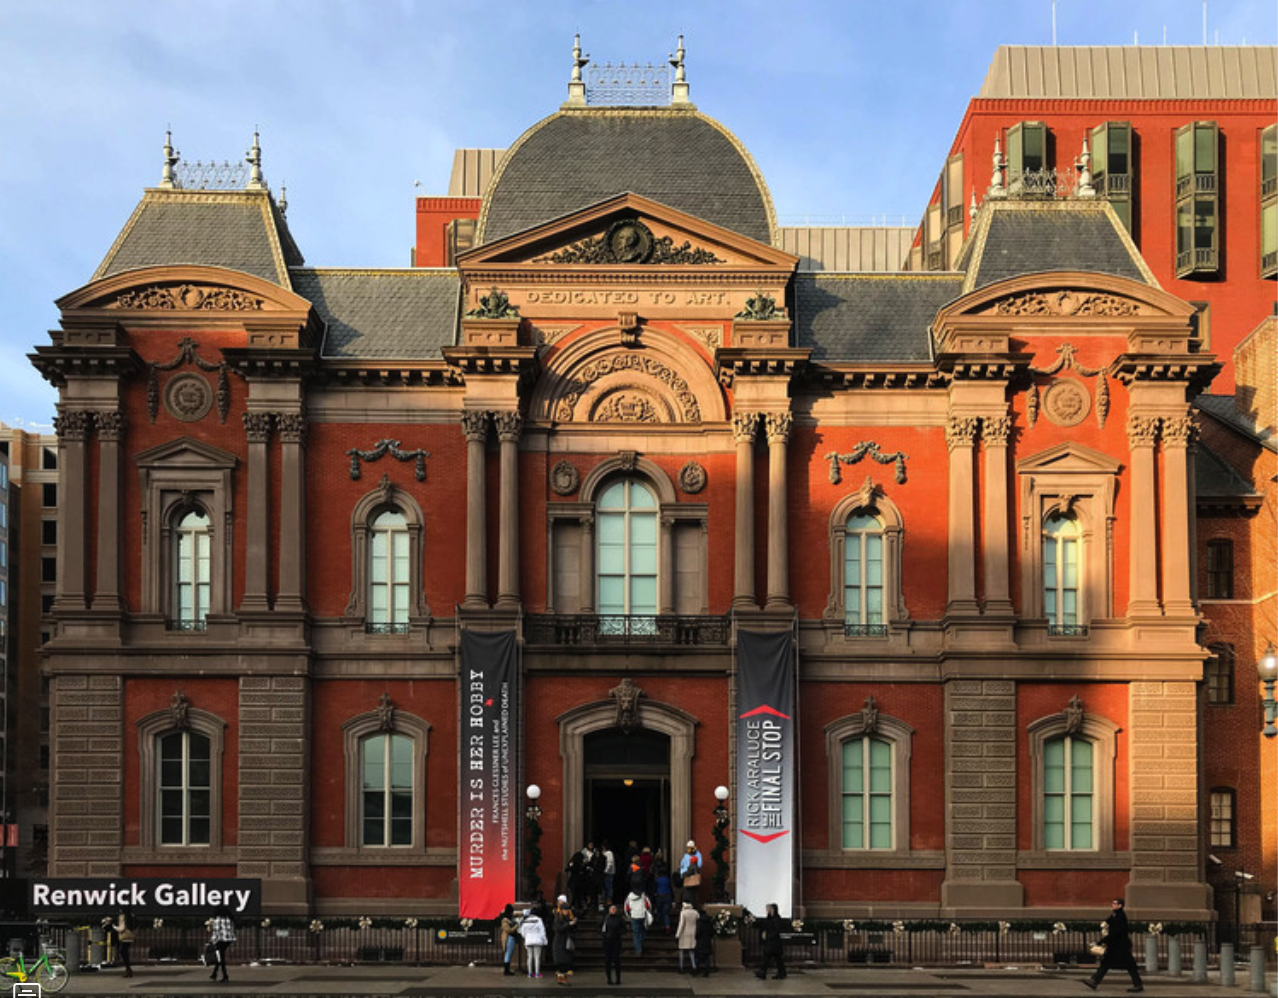 The Renwick Gallery. Image Courtesy of Flickr User massmatt